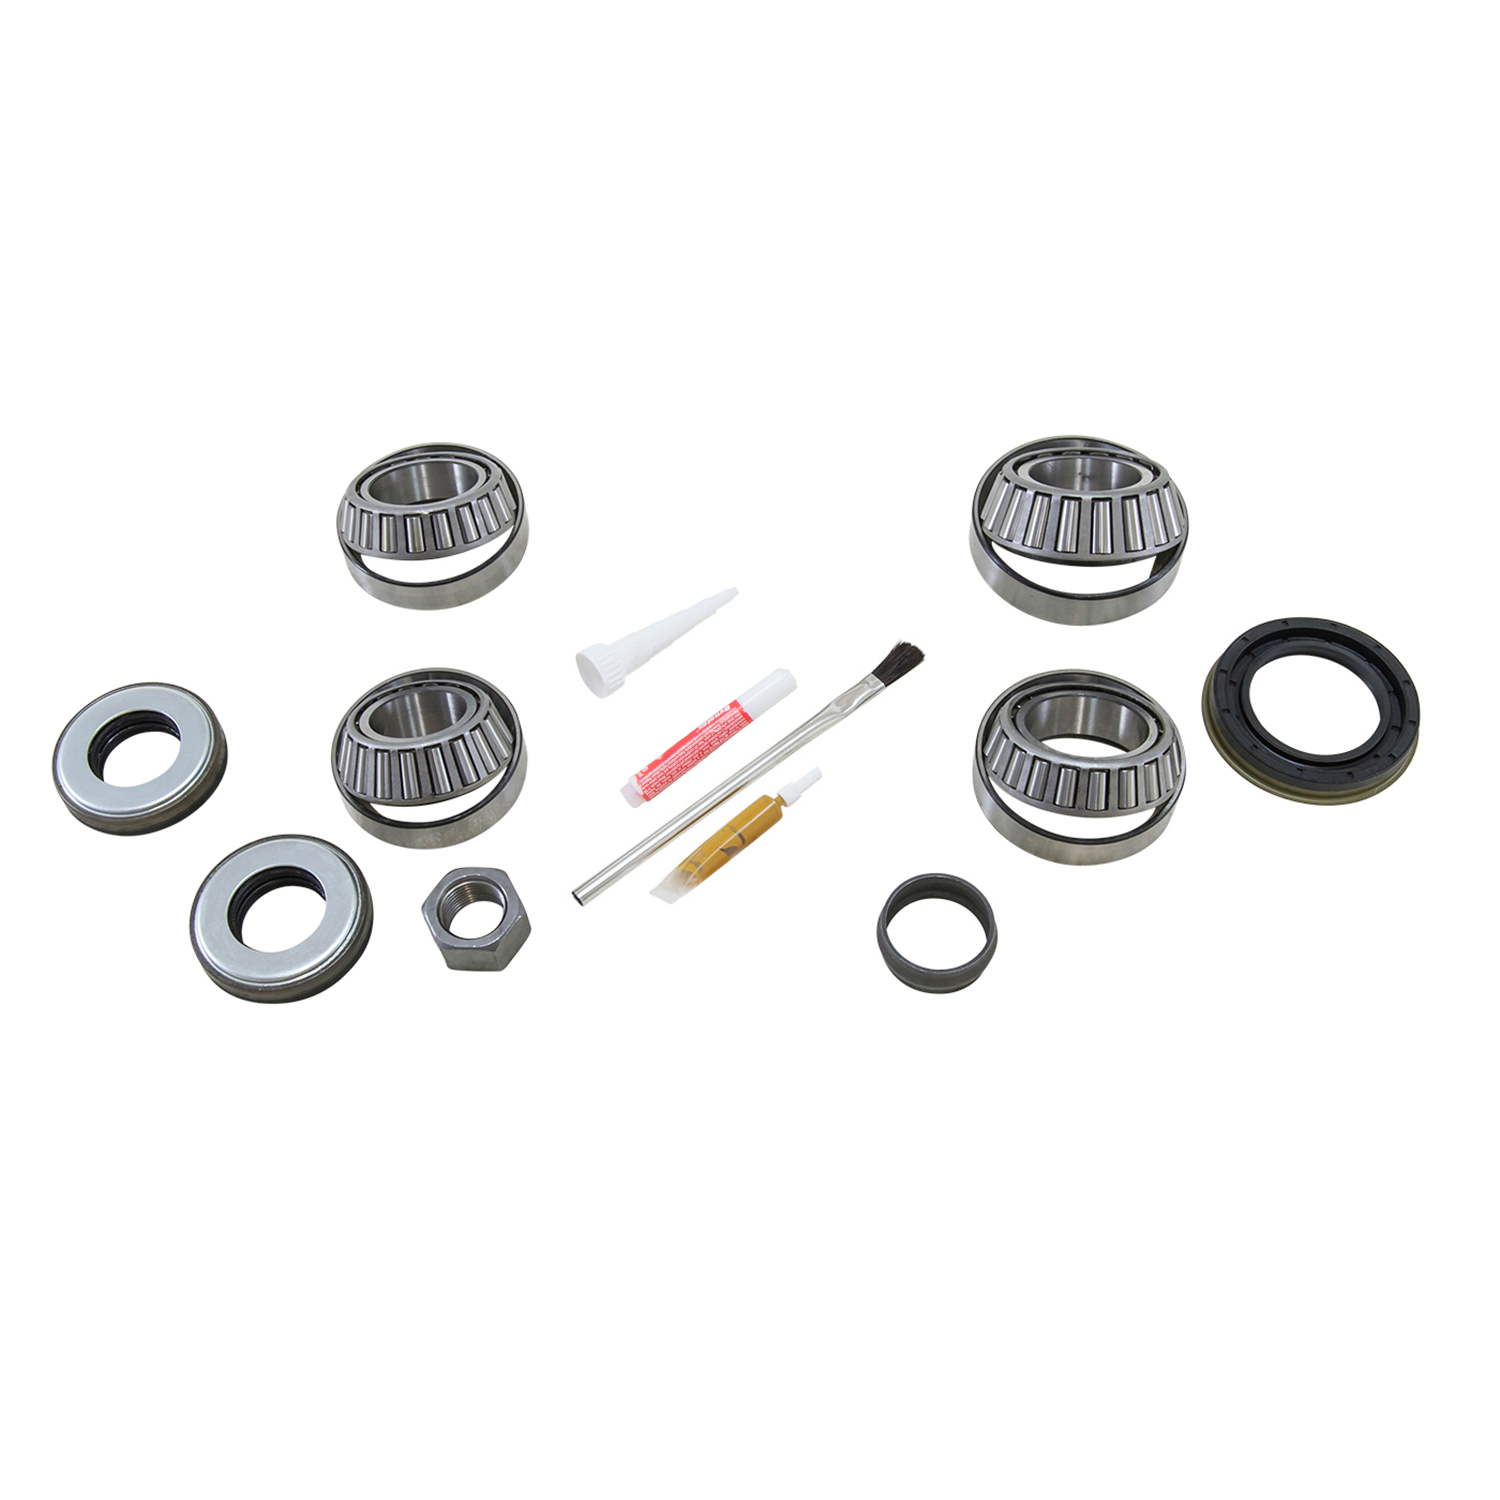 ZBKGM9.25IFS-B - USA Standard Bearing kit for  '11 & up GM 9.25